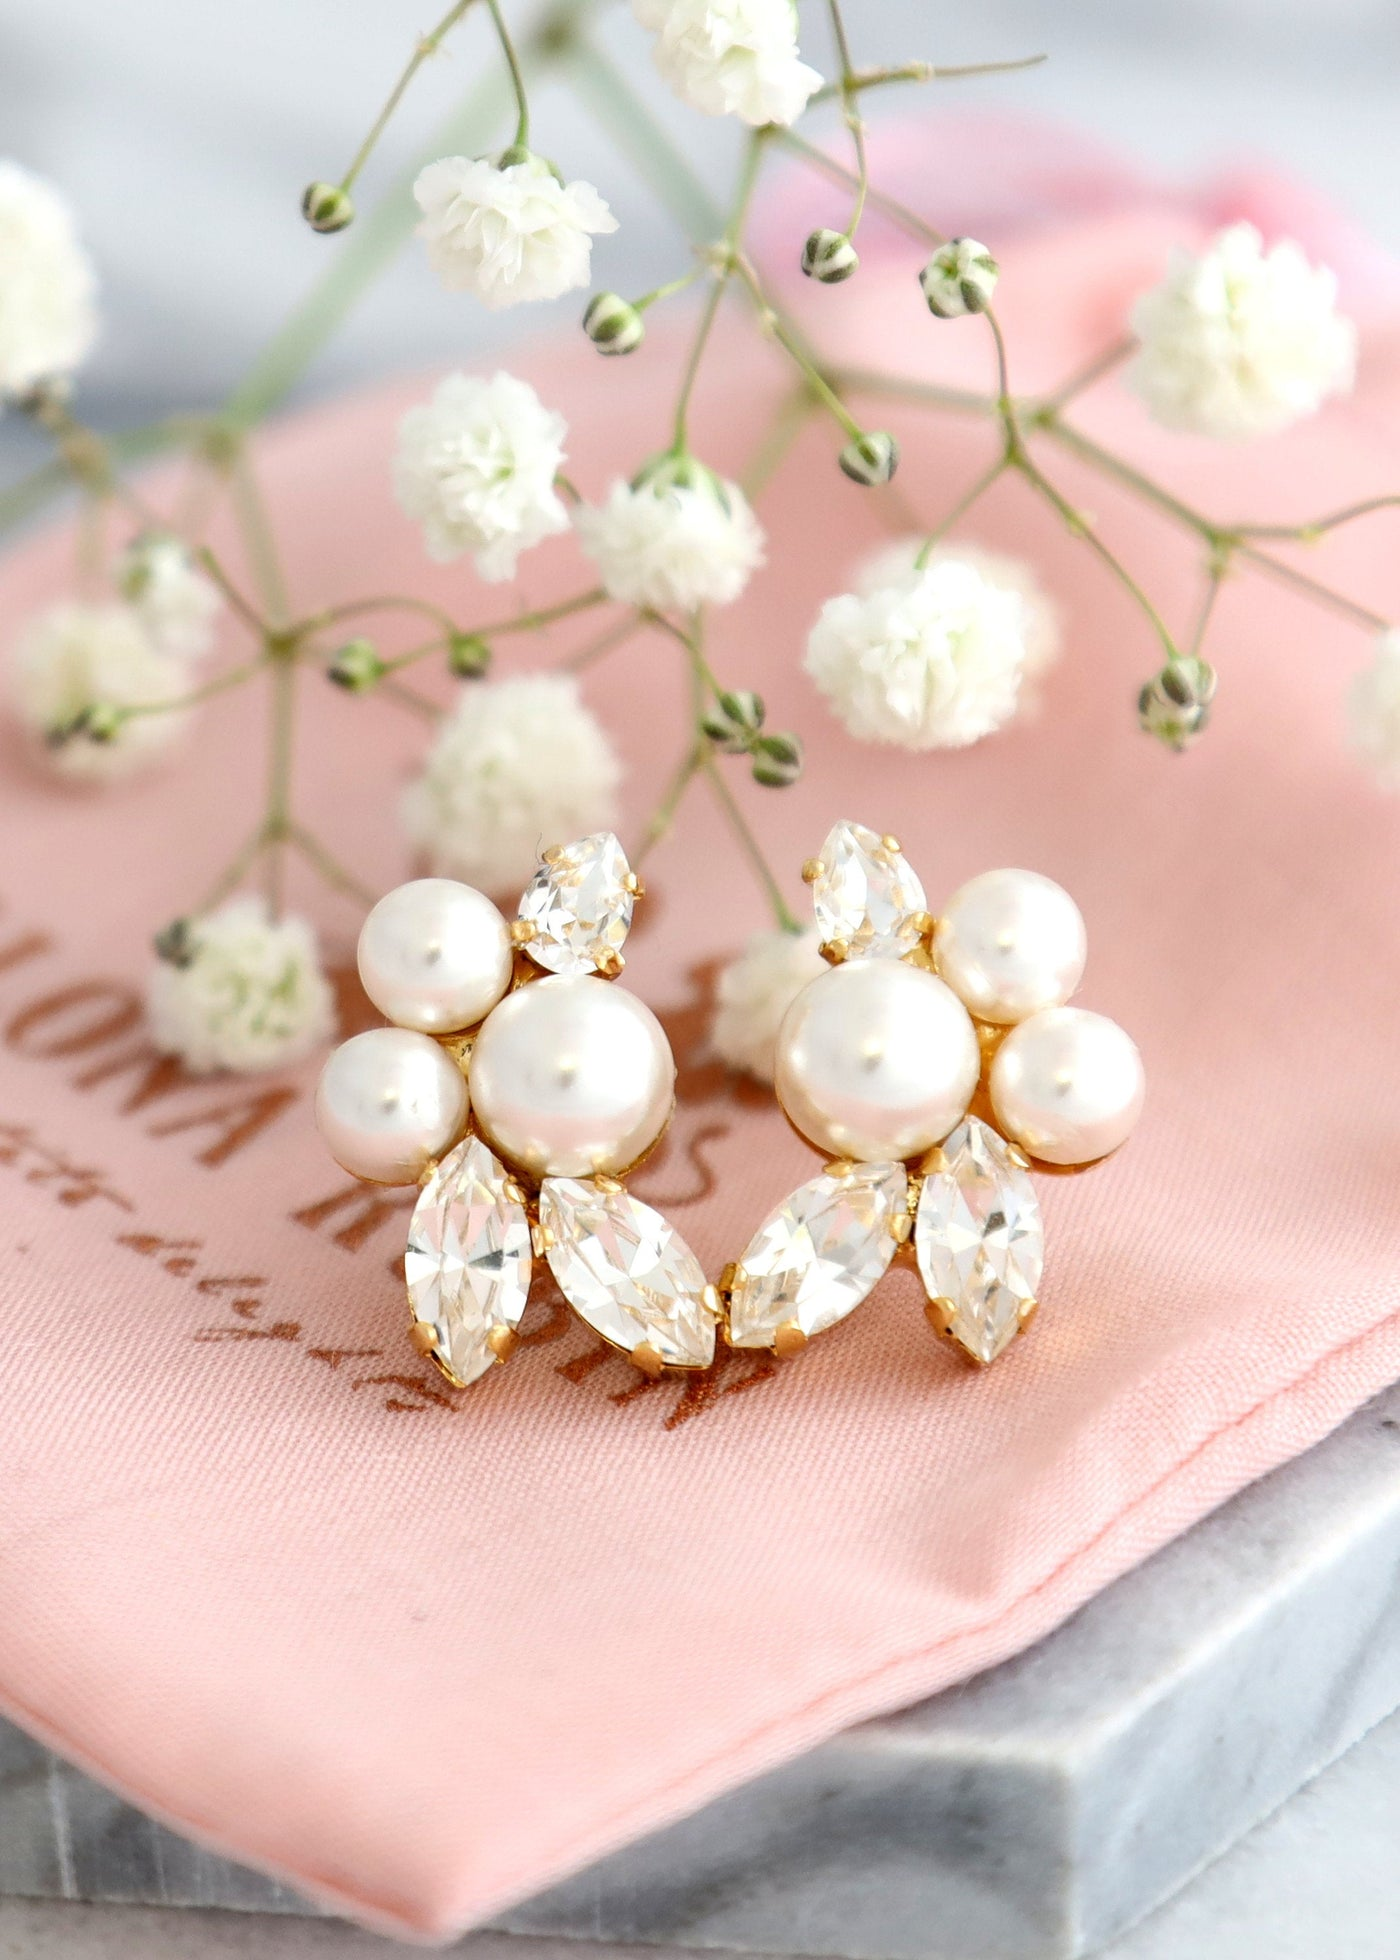 Pearl Earrings, Bridal Pearl Crystal Earrings, Bridal Crystal Earrings, Bridal Climber Pearl Earrings, Bridesmaids Earrings, Bridal Earrings